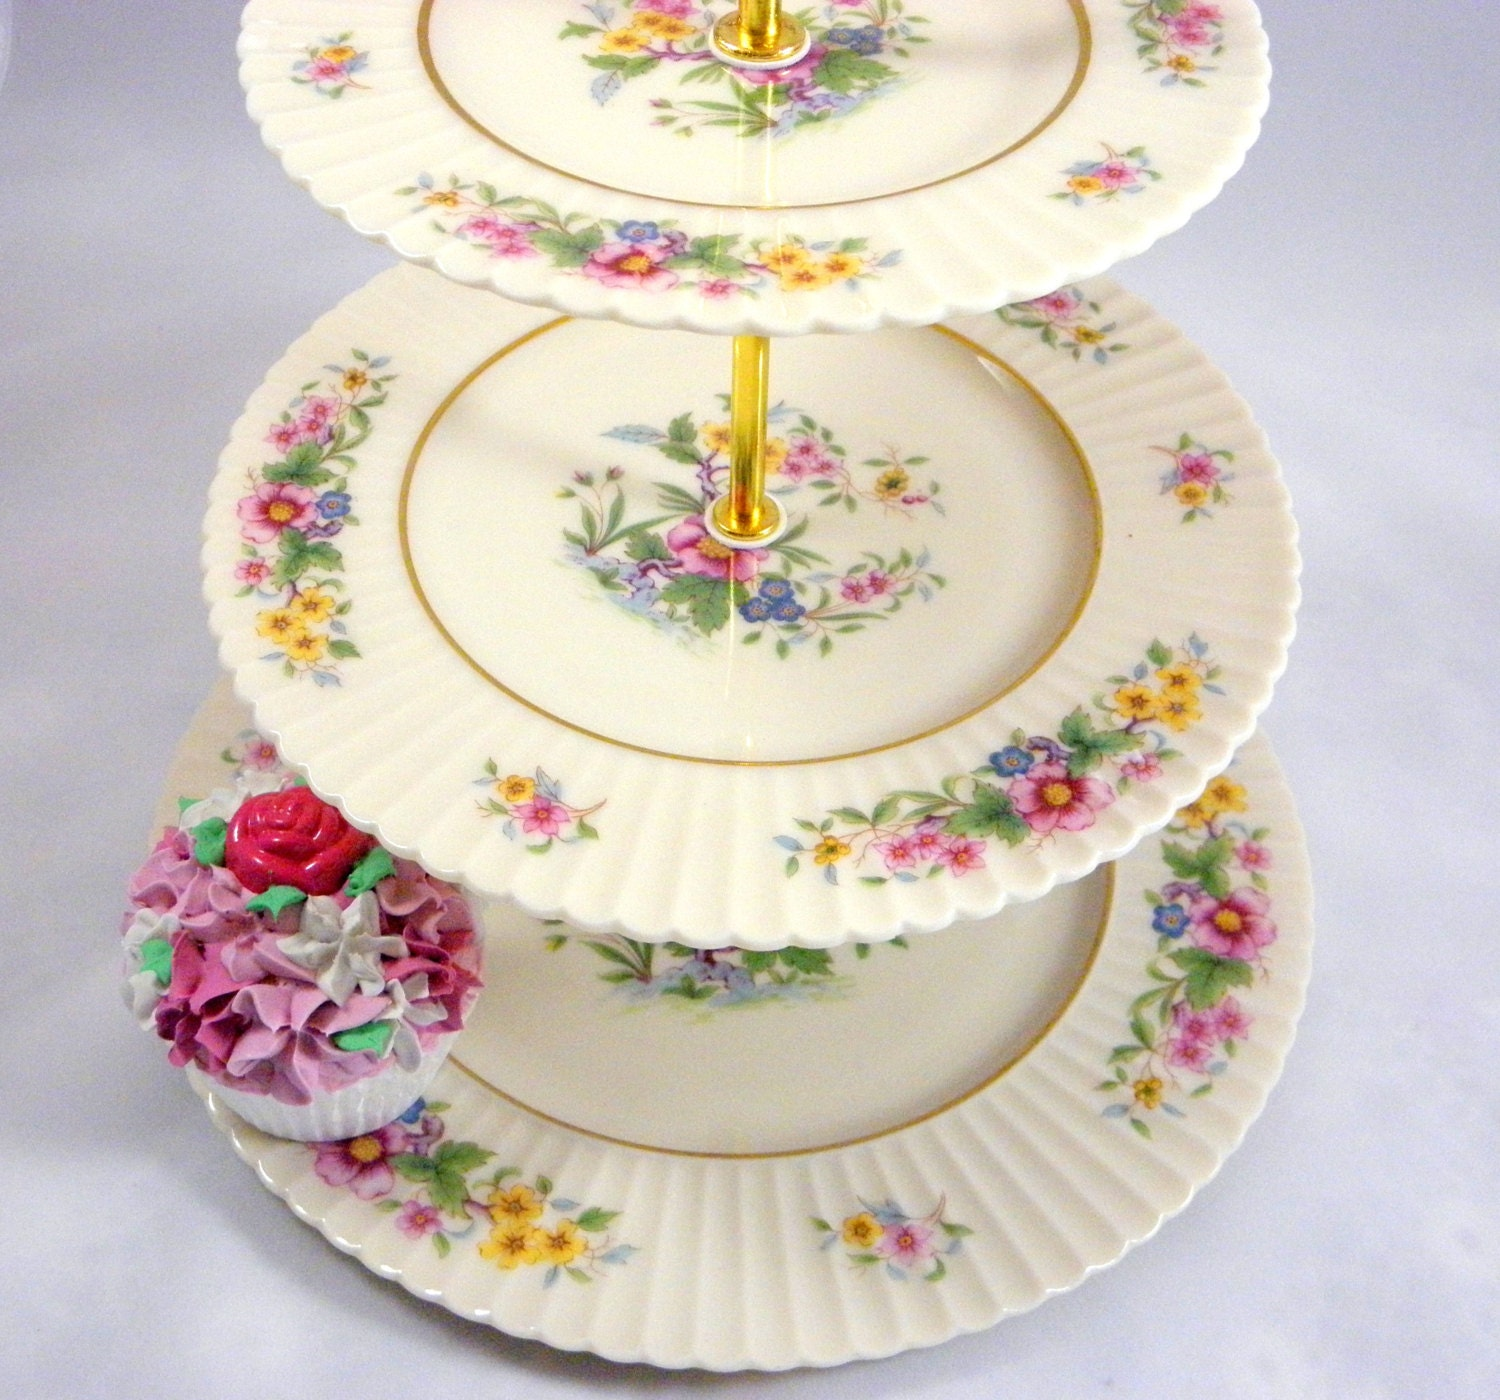 3 tier cake stand tiered cake stand lenox floral cupcake. Black Bedroom Furniture Sets. Home Design Ideas